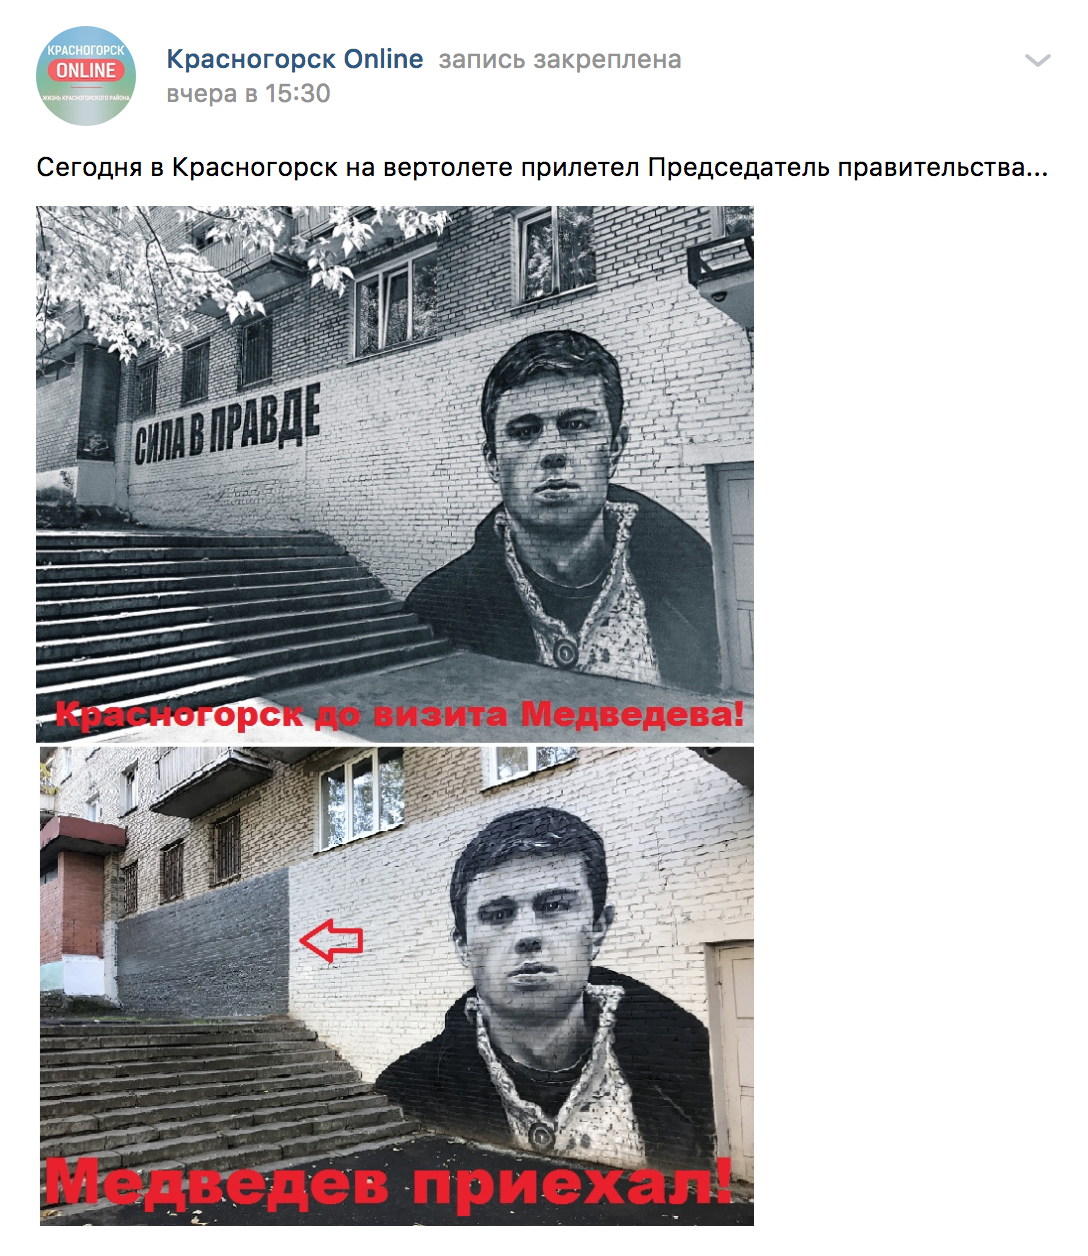 Bodrov was rubbed for the arrival of Medvedev Krasnogorsk, the arrival, Dmitry, Anatolyevich, the author, is, truth, a magazine, an inscription, a hero, Danila, content, graphic, audio, text, video, any, license, Ministry, culture